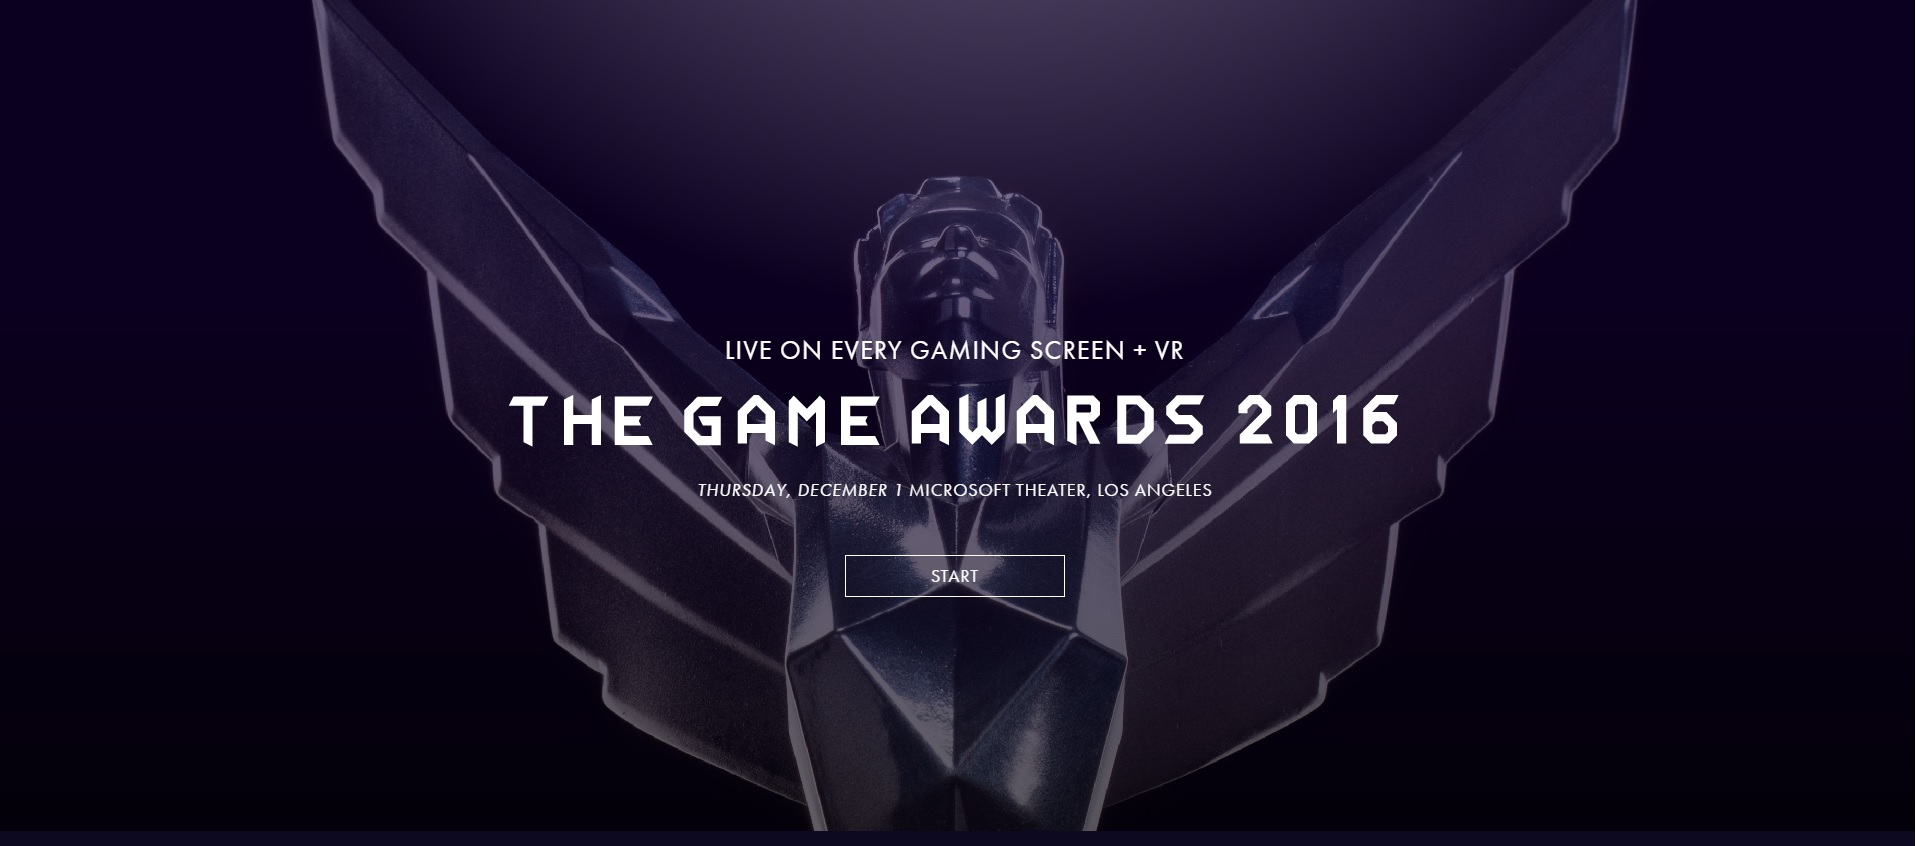 Seguí en VIVO The Game Awards 2016 [Actualización: Finalizó]